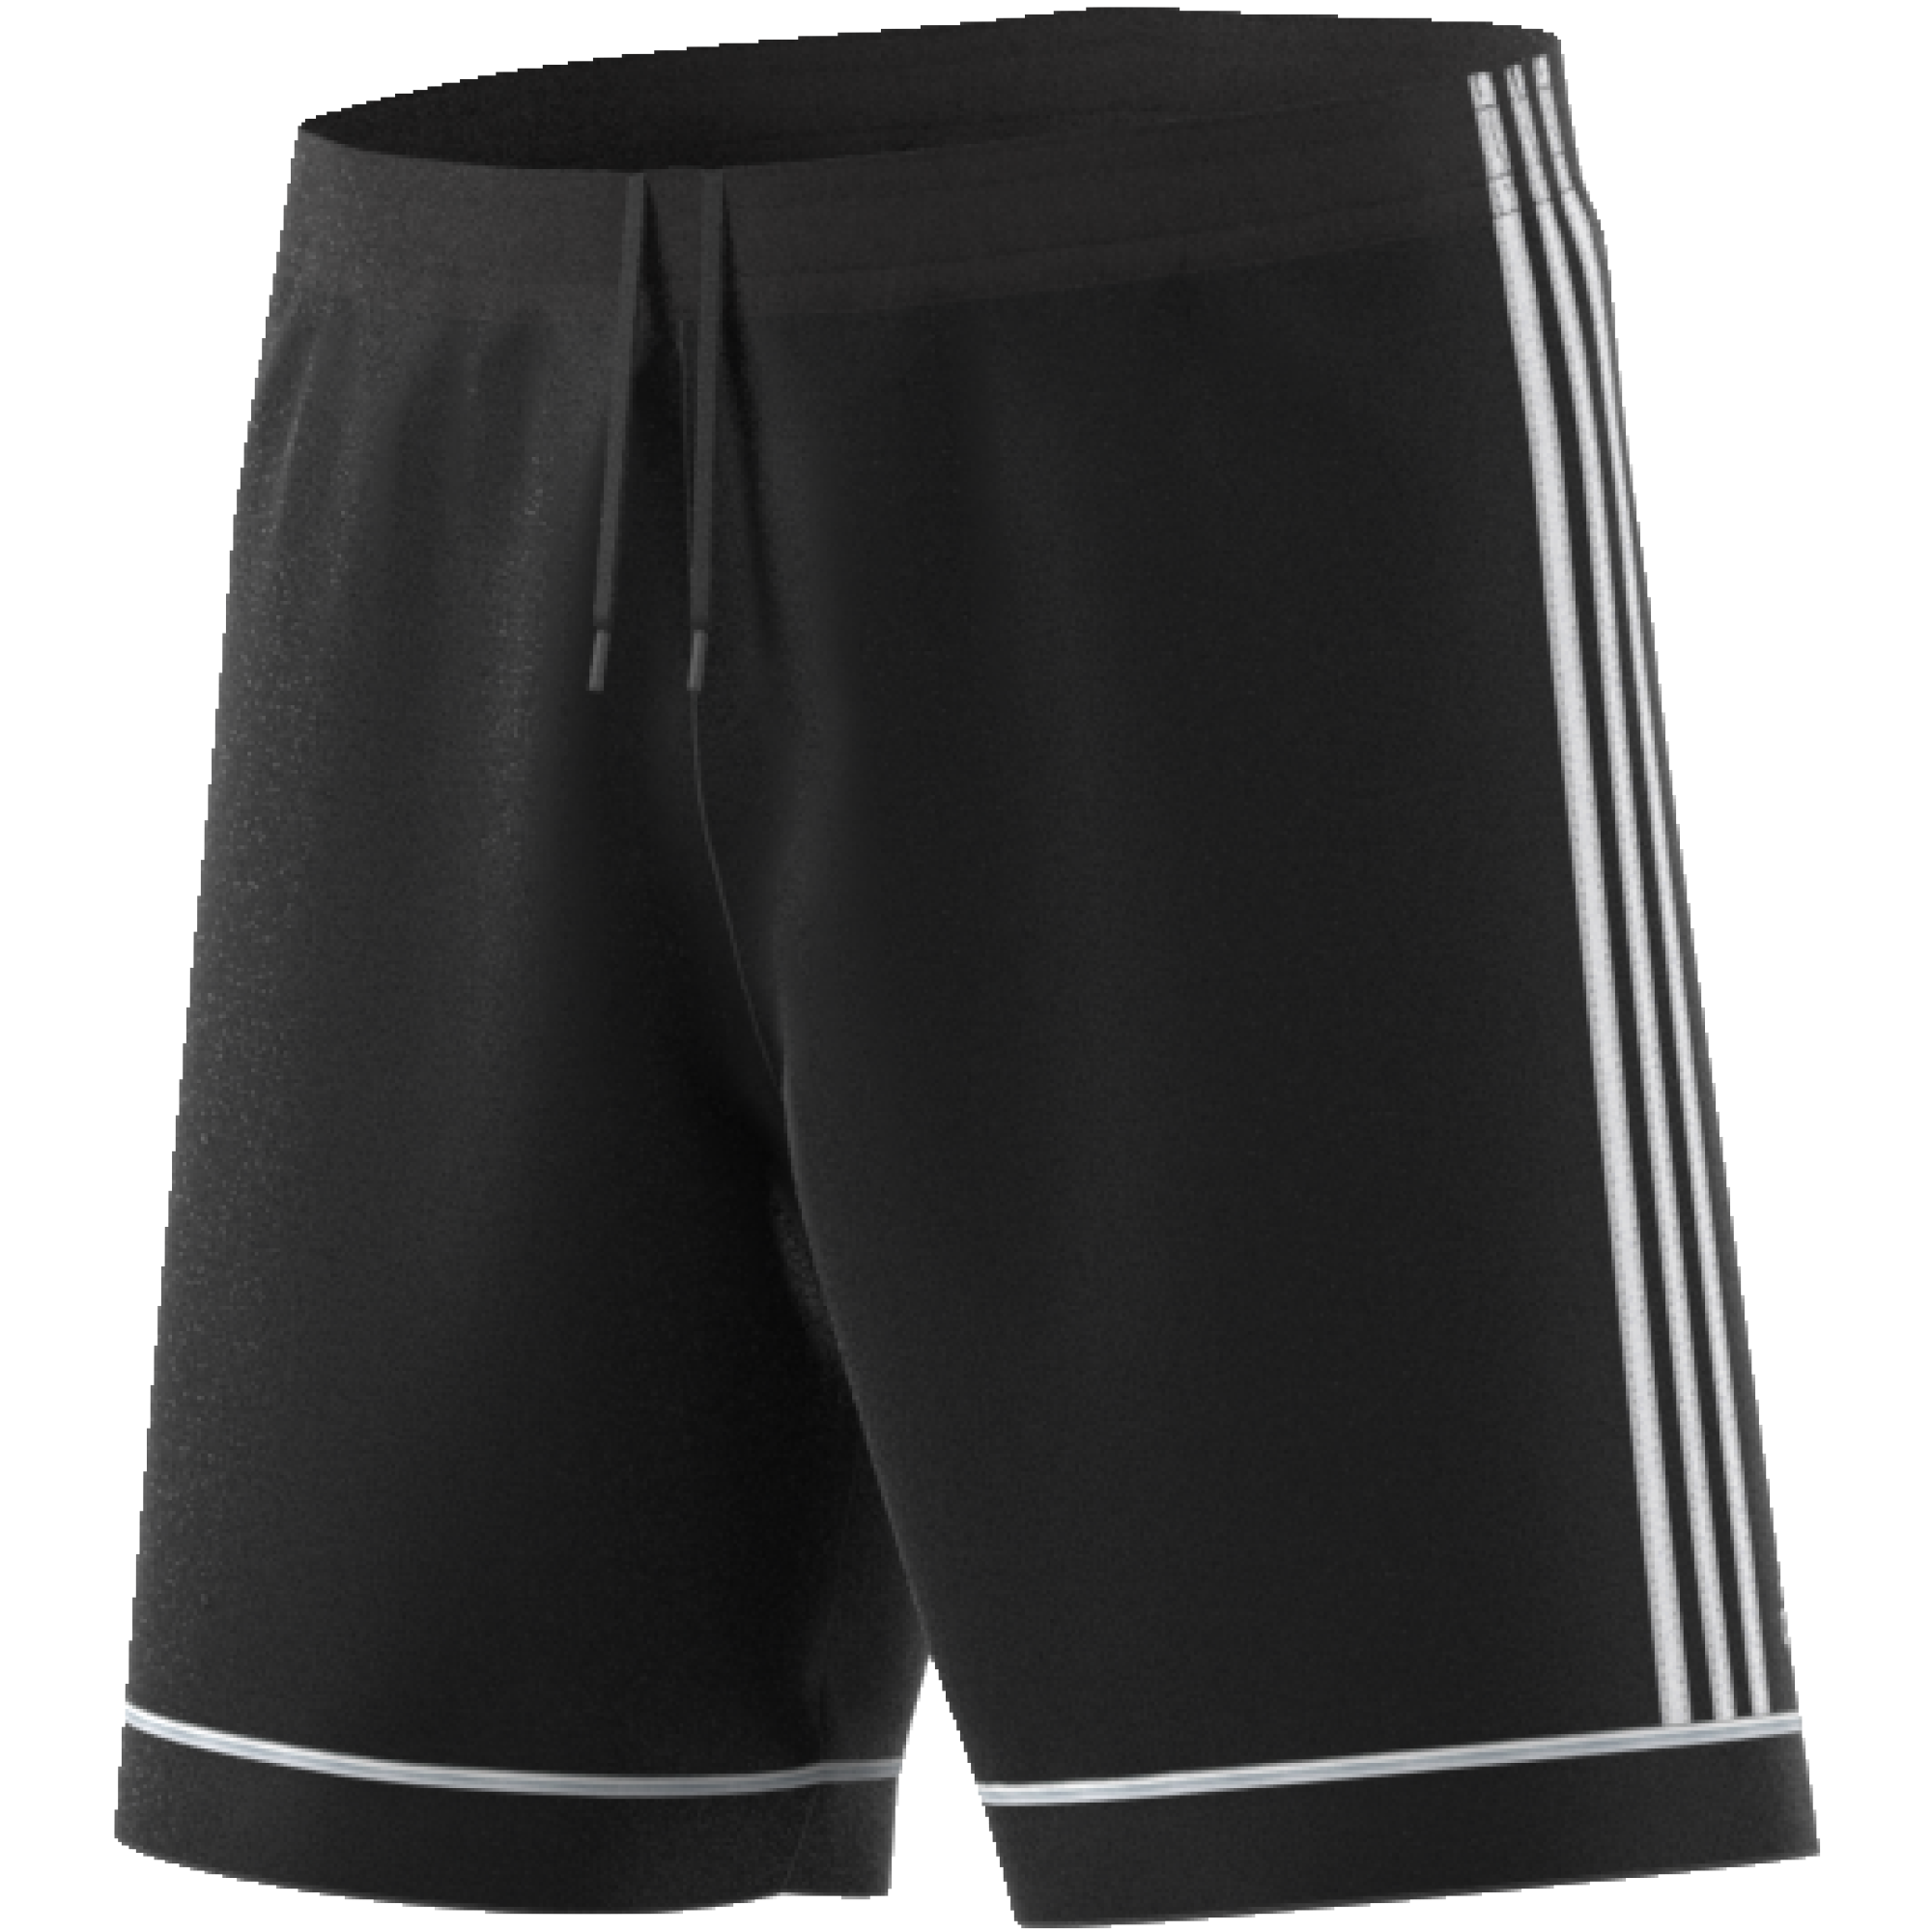 Duncombe Park CC Adidas Black Training Shorts